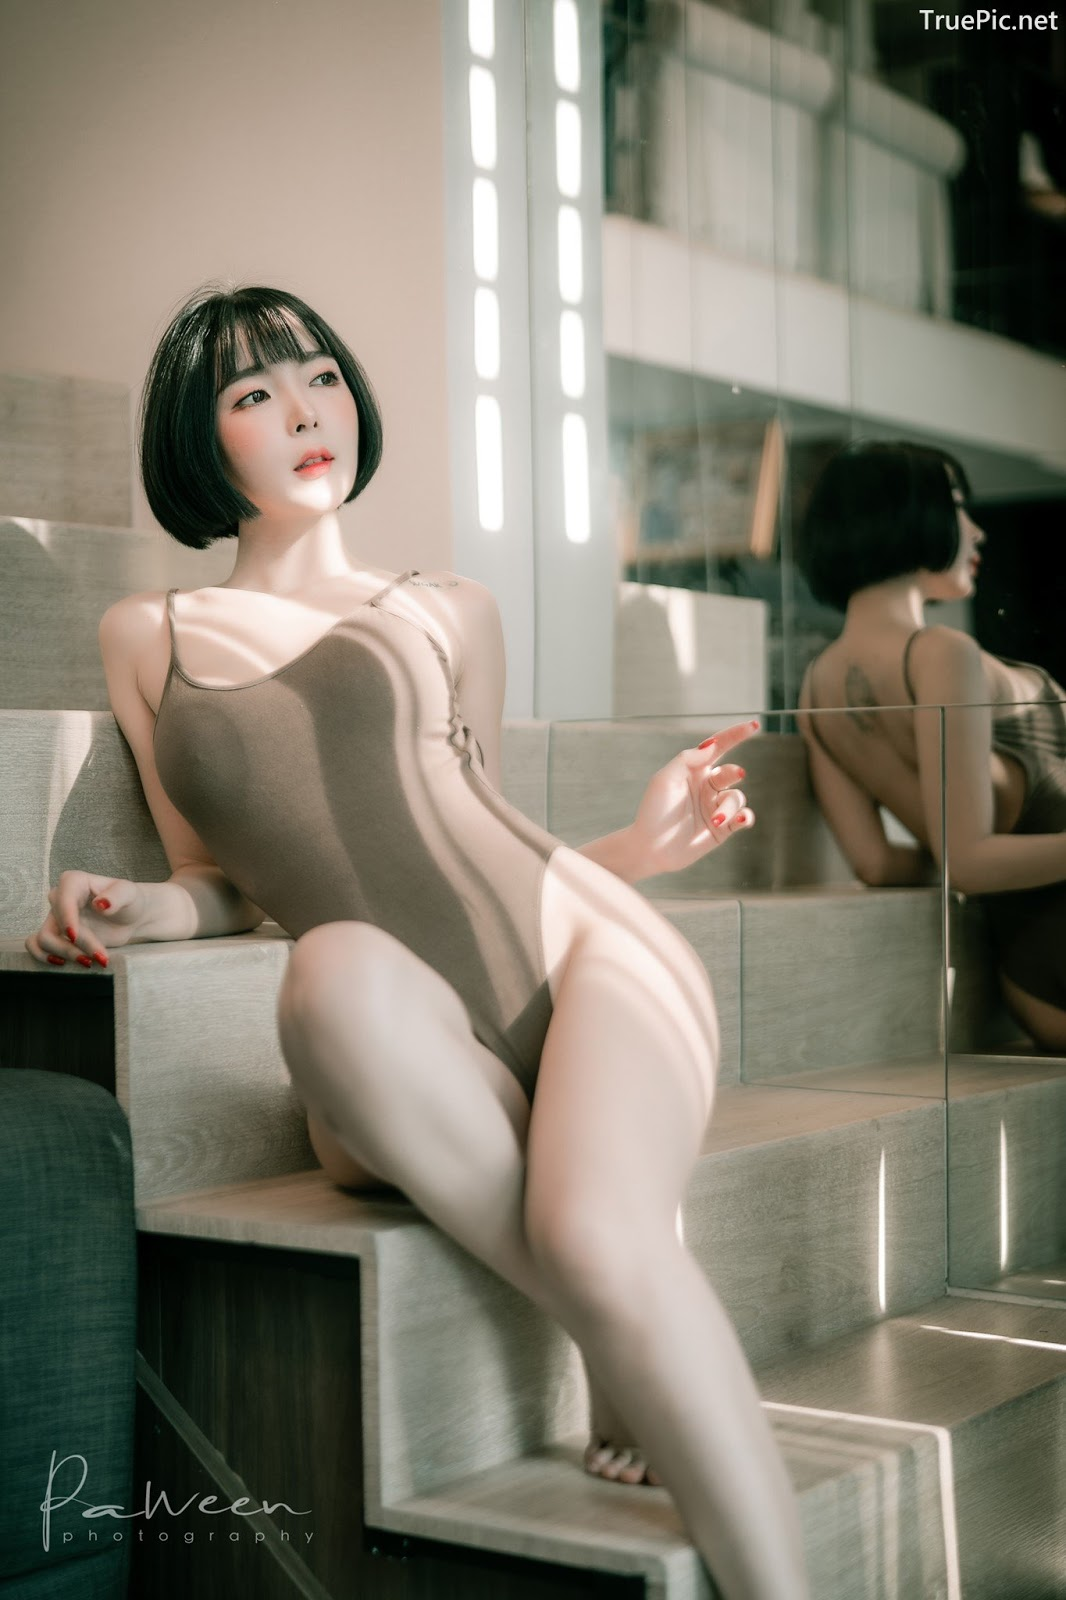 Image Thailand Model - Preeyapon Yangsanpoo - One Piece Swimsuit In House - TruePic.net - Picture-8